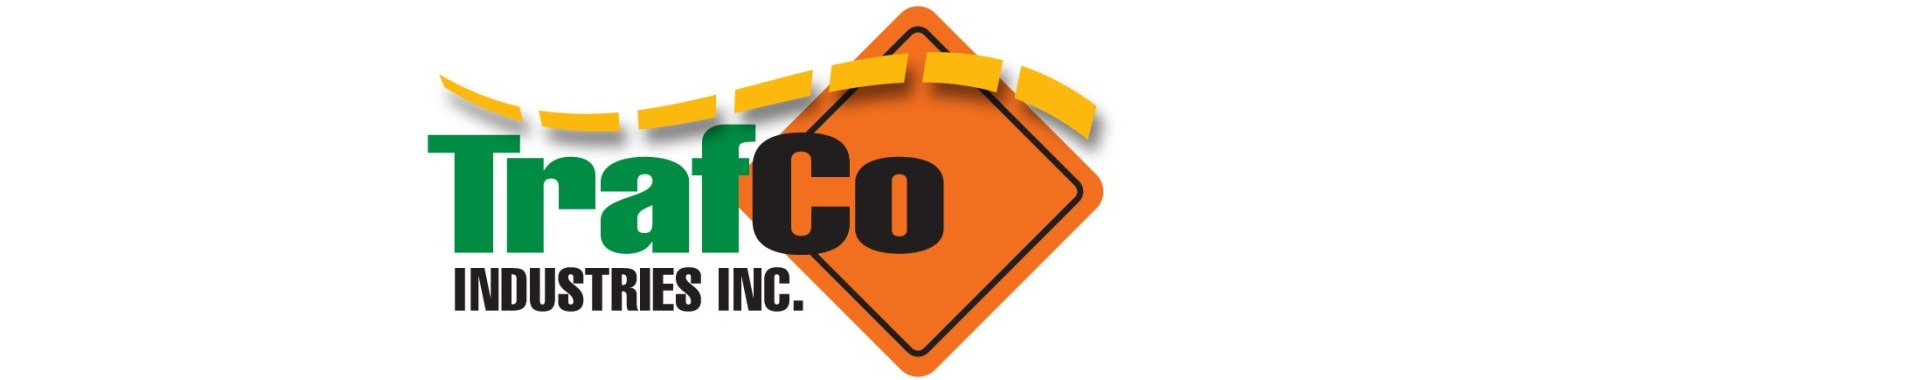 Trafco Industries_Shur-Tite